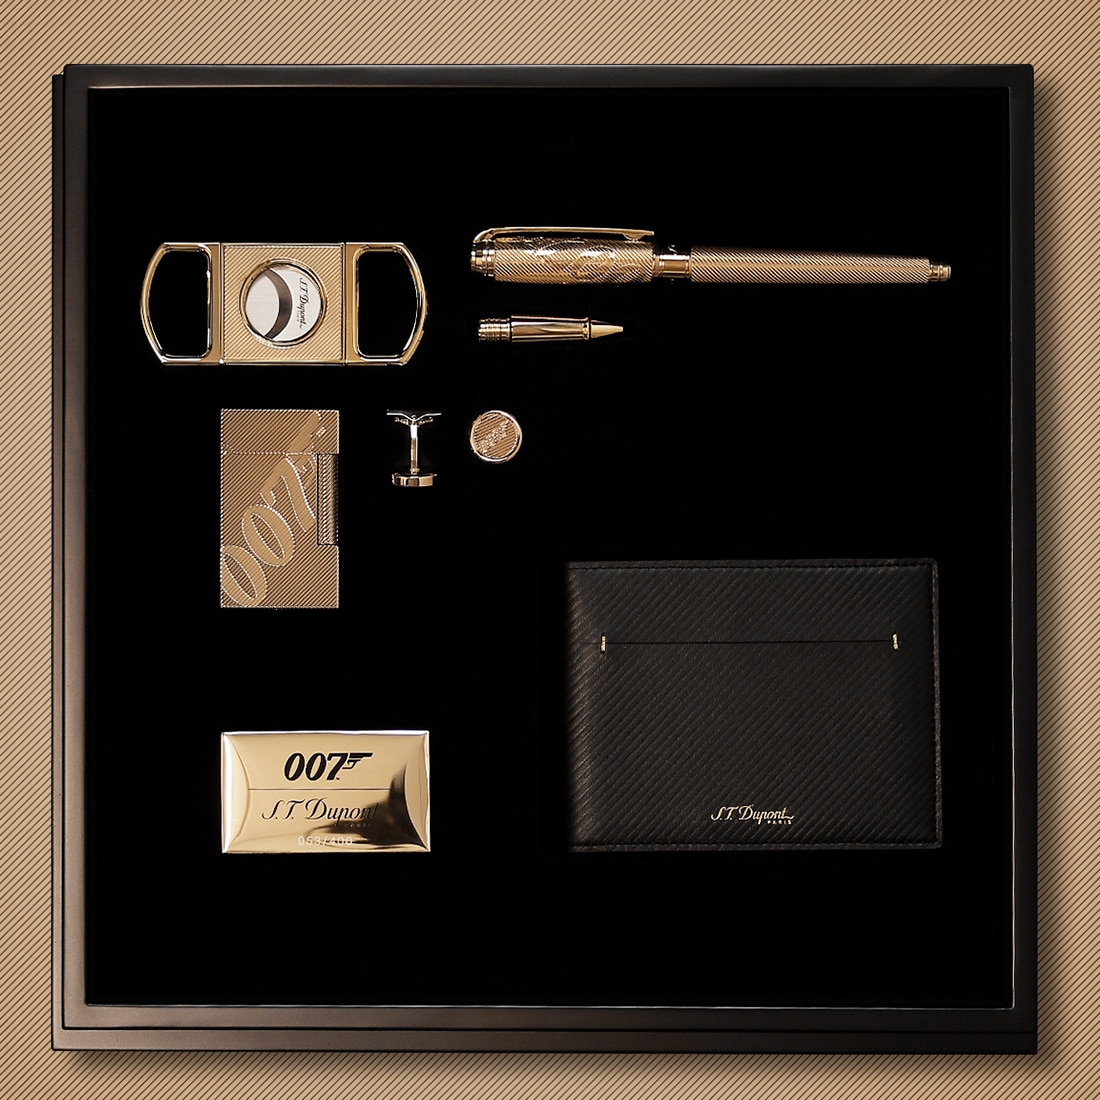 Photo #10 de Coffret Collector S.T. Dupont James Bond 007